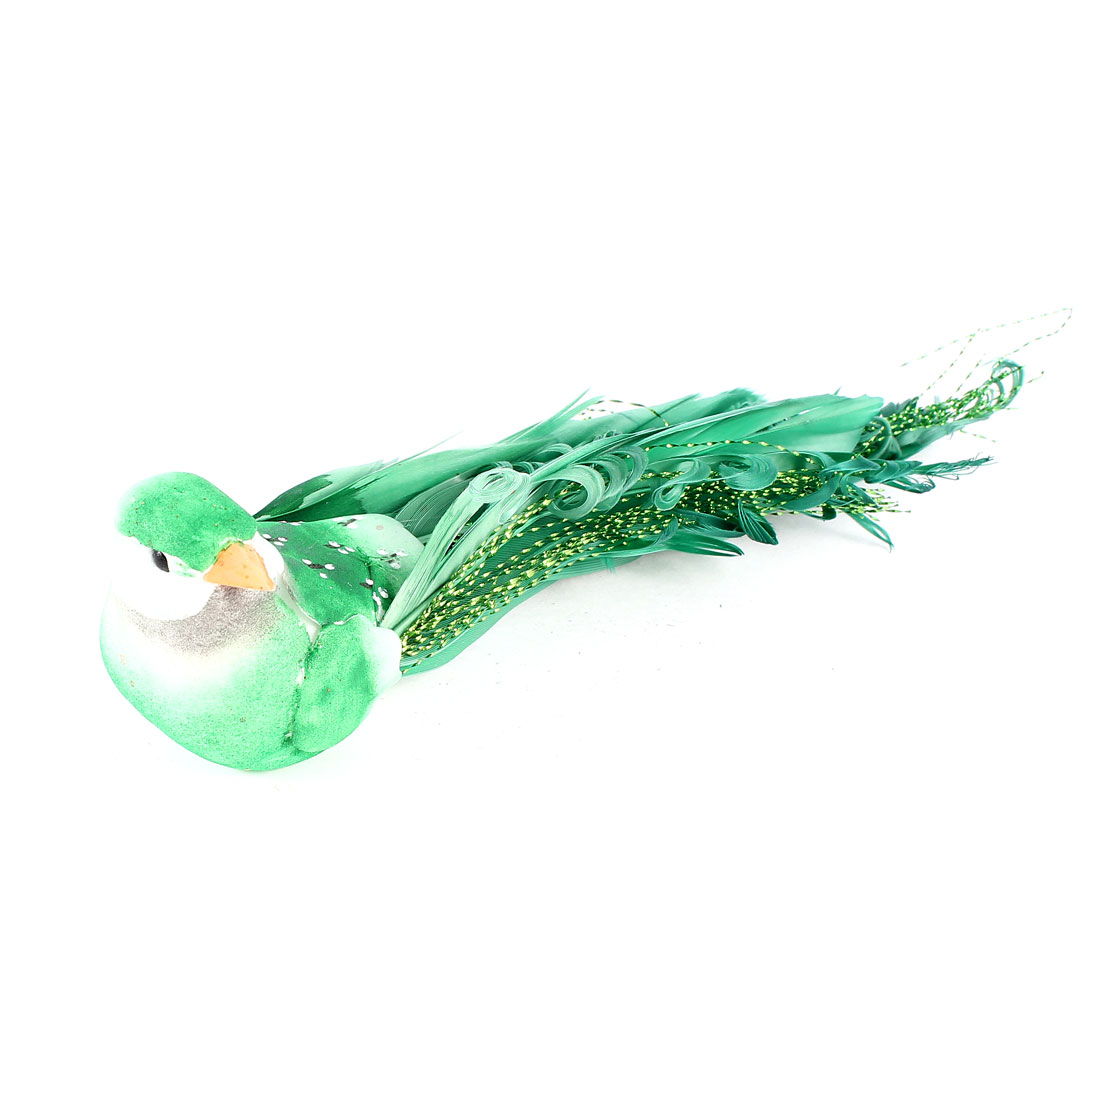 "Blink Thread Accent Magnetic Body Simulated Bird Desk Decor Green 5.5"" Long"